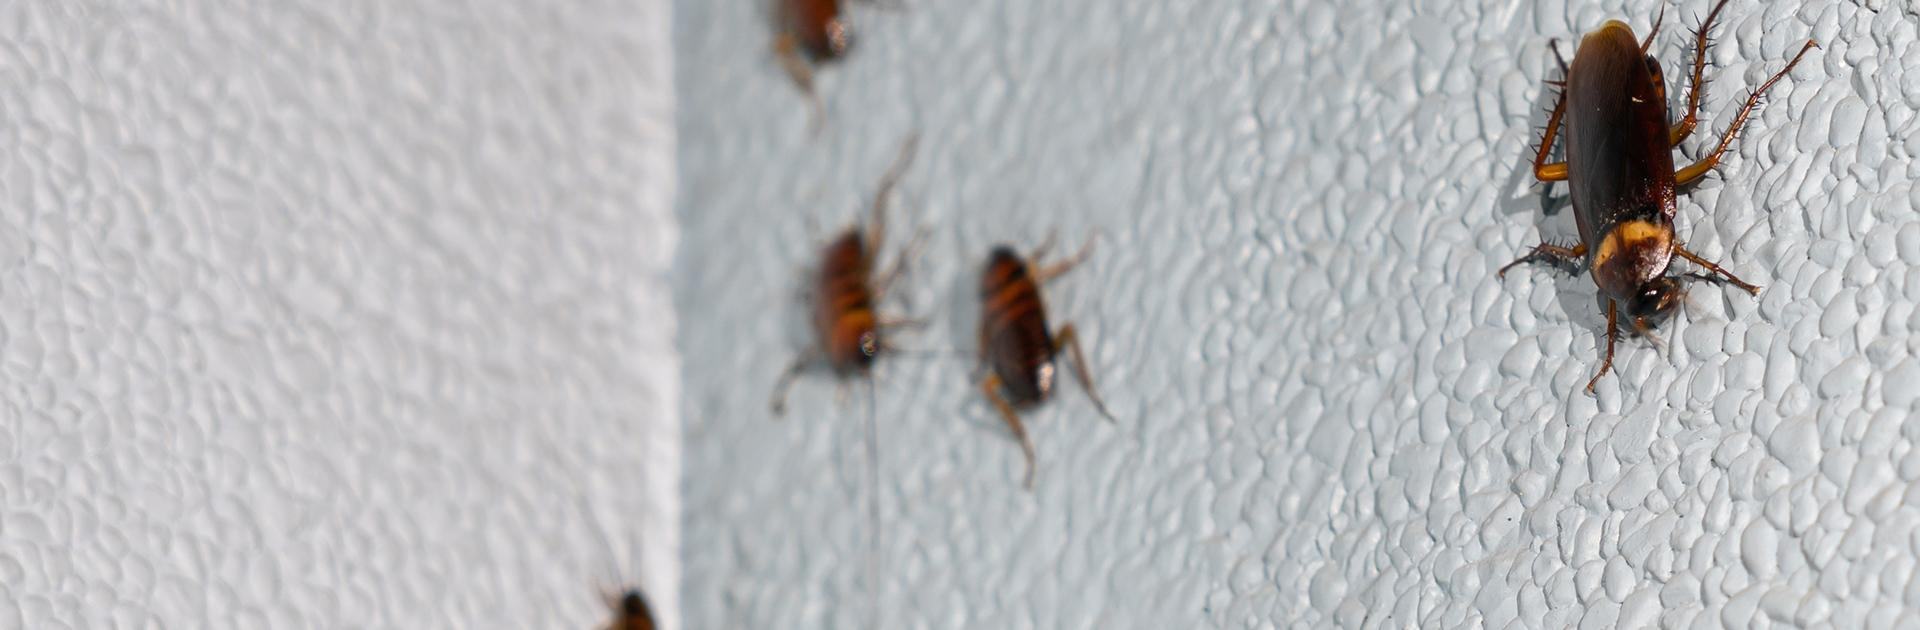 five cockroaches crawling on a bathroom wall